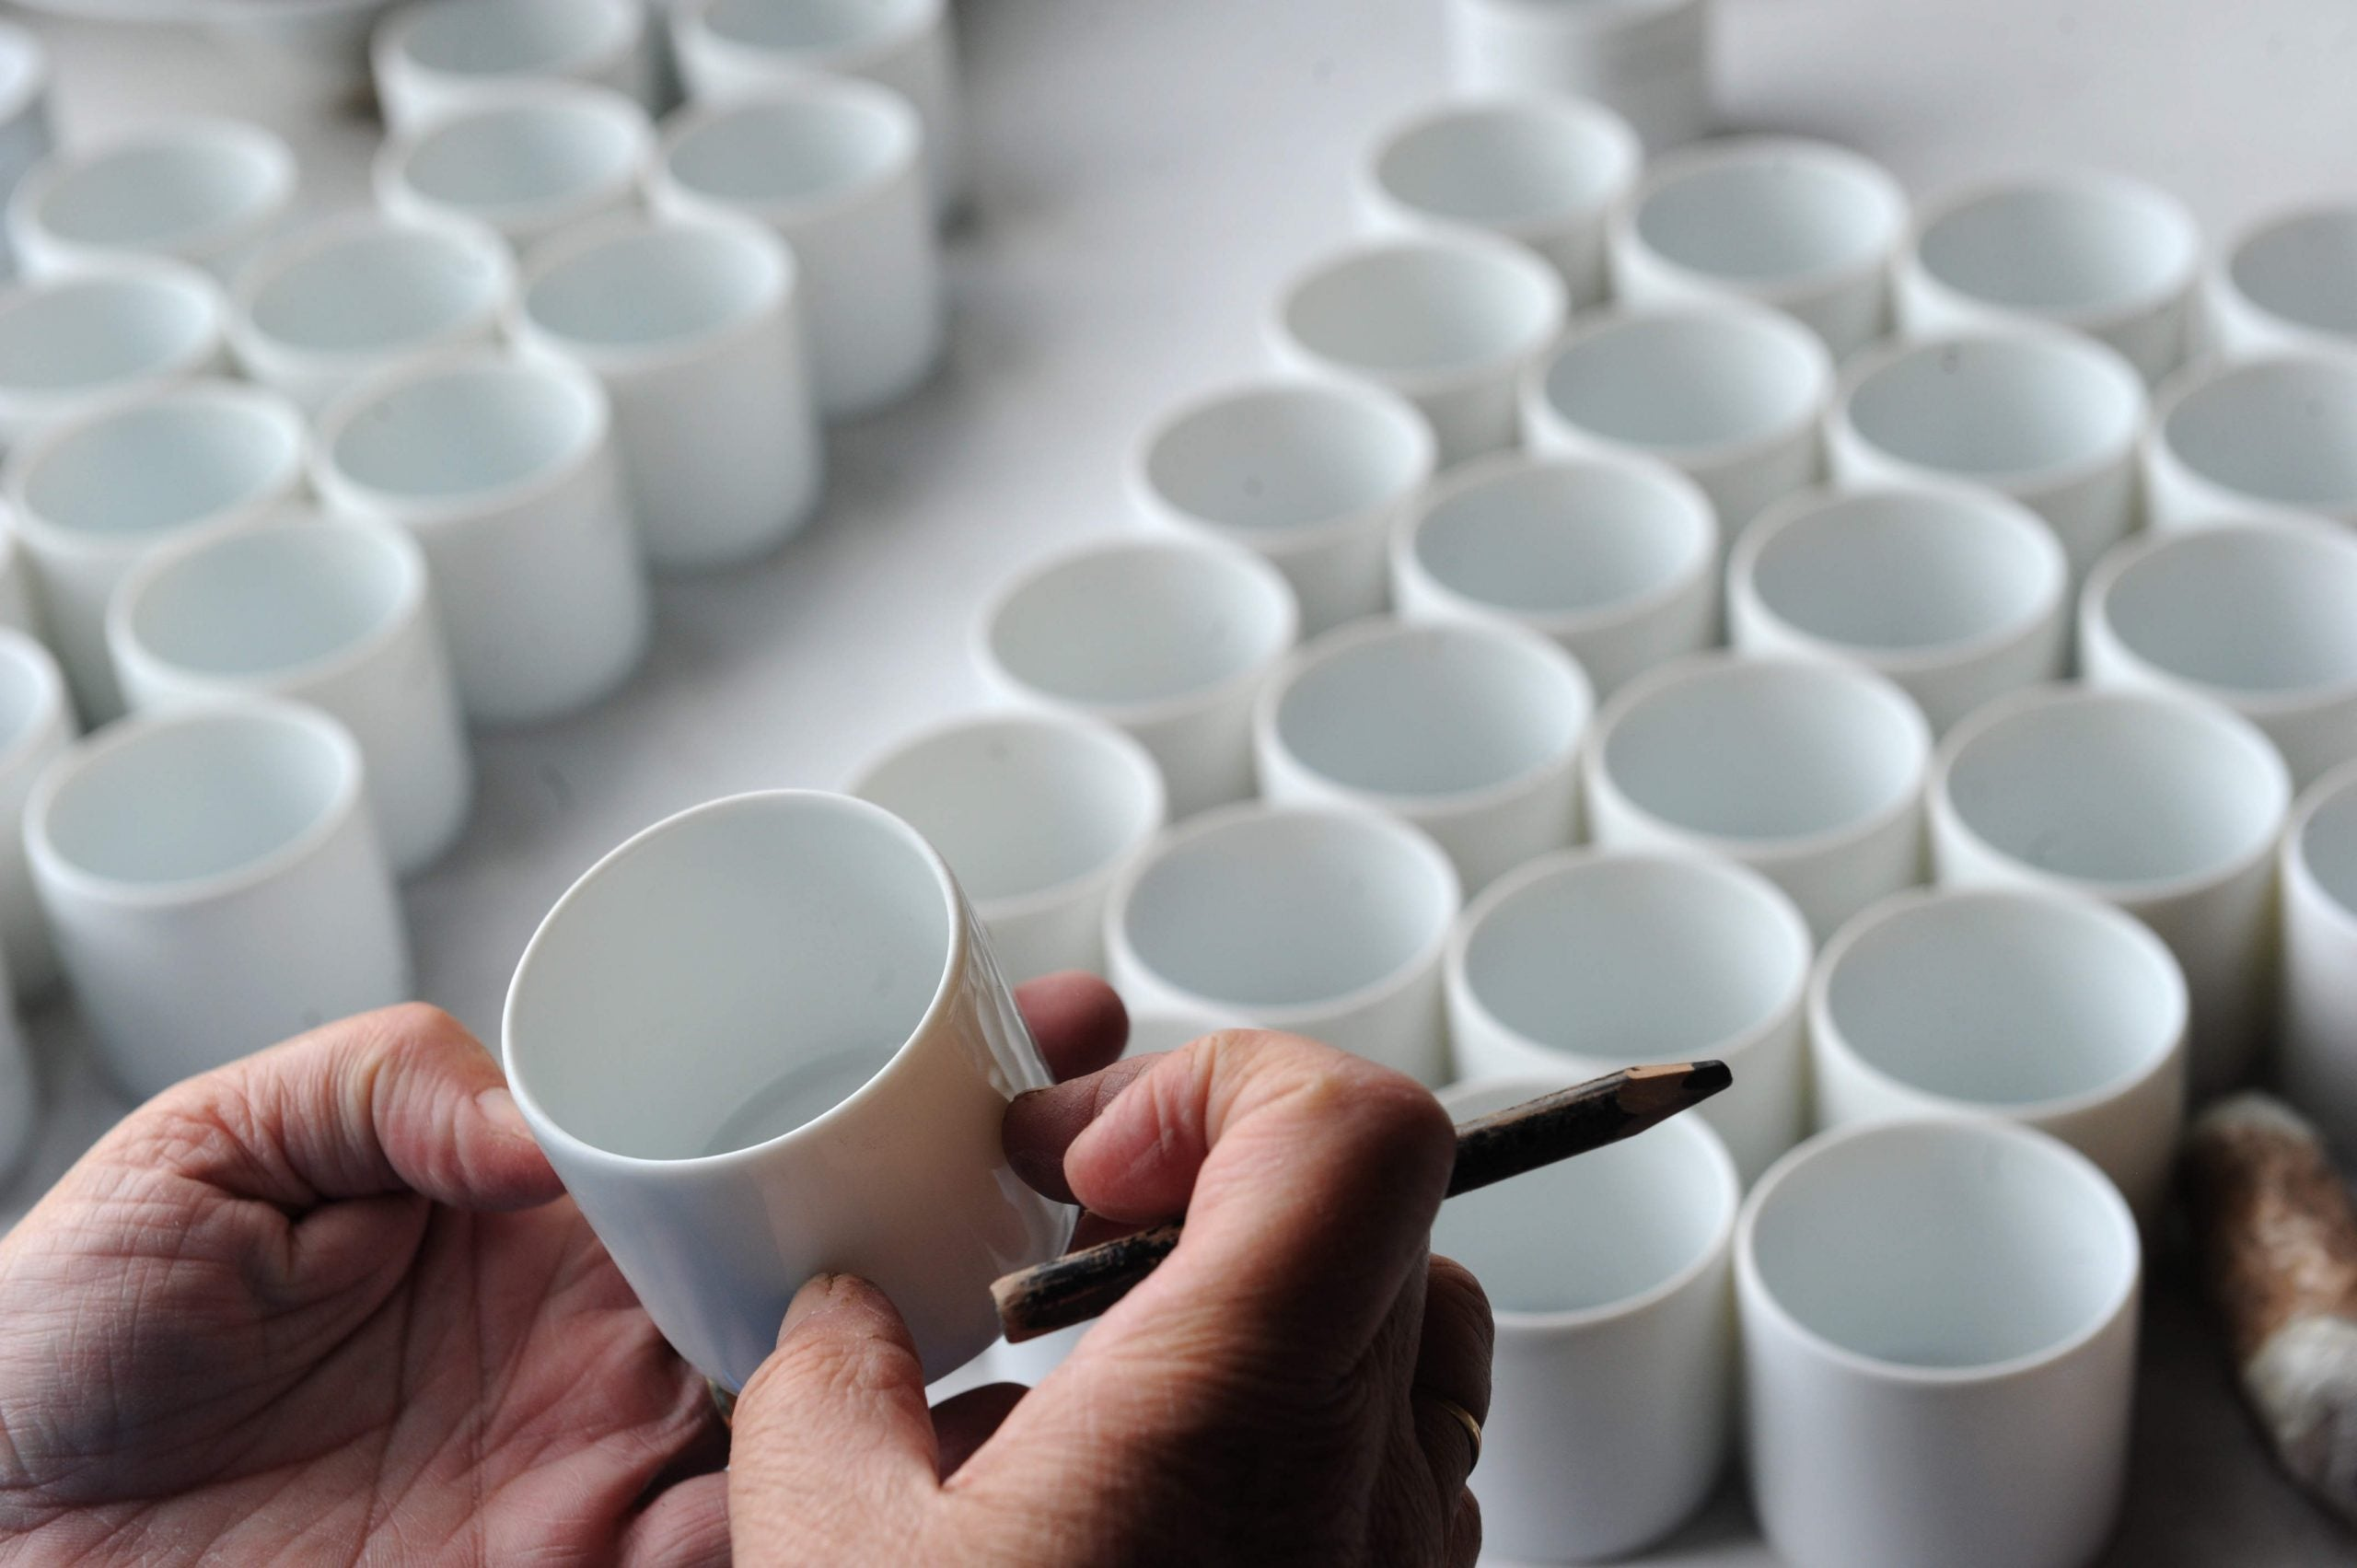 Edmund de Waal's The White Road follows the journey of creativity